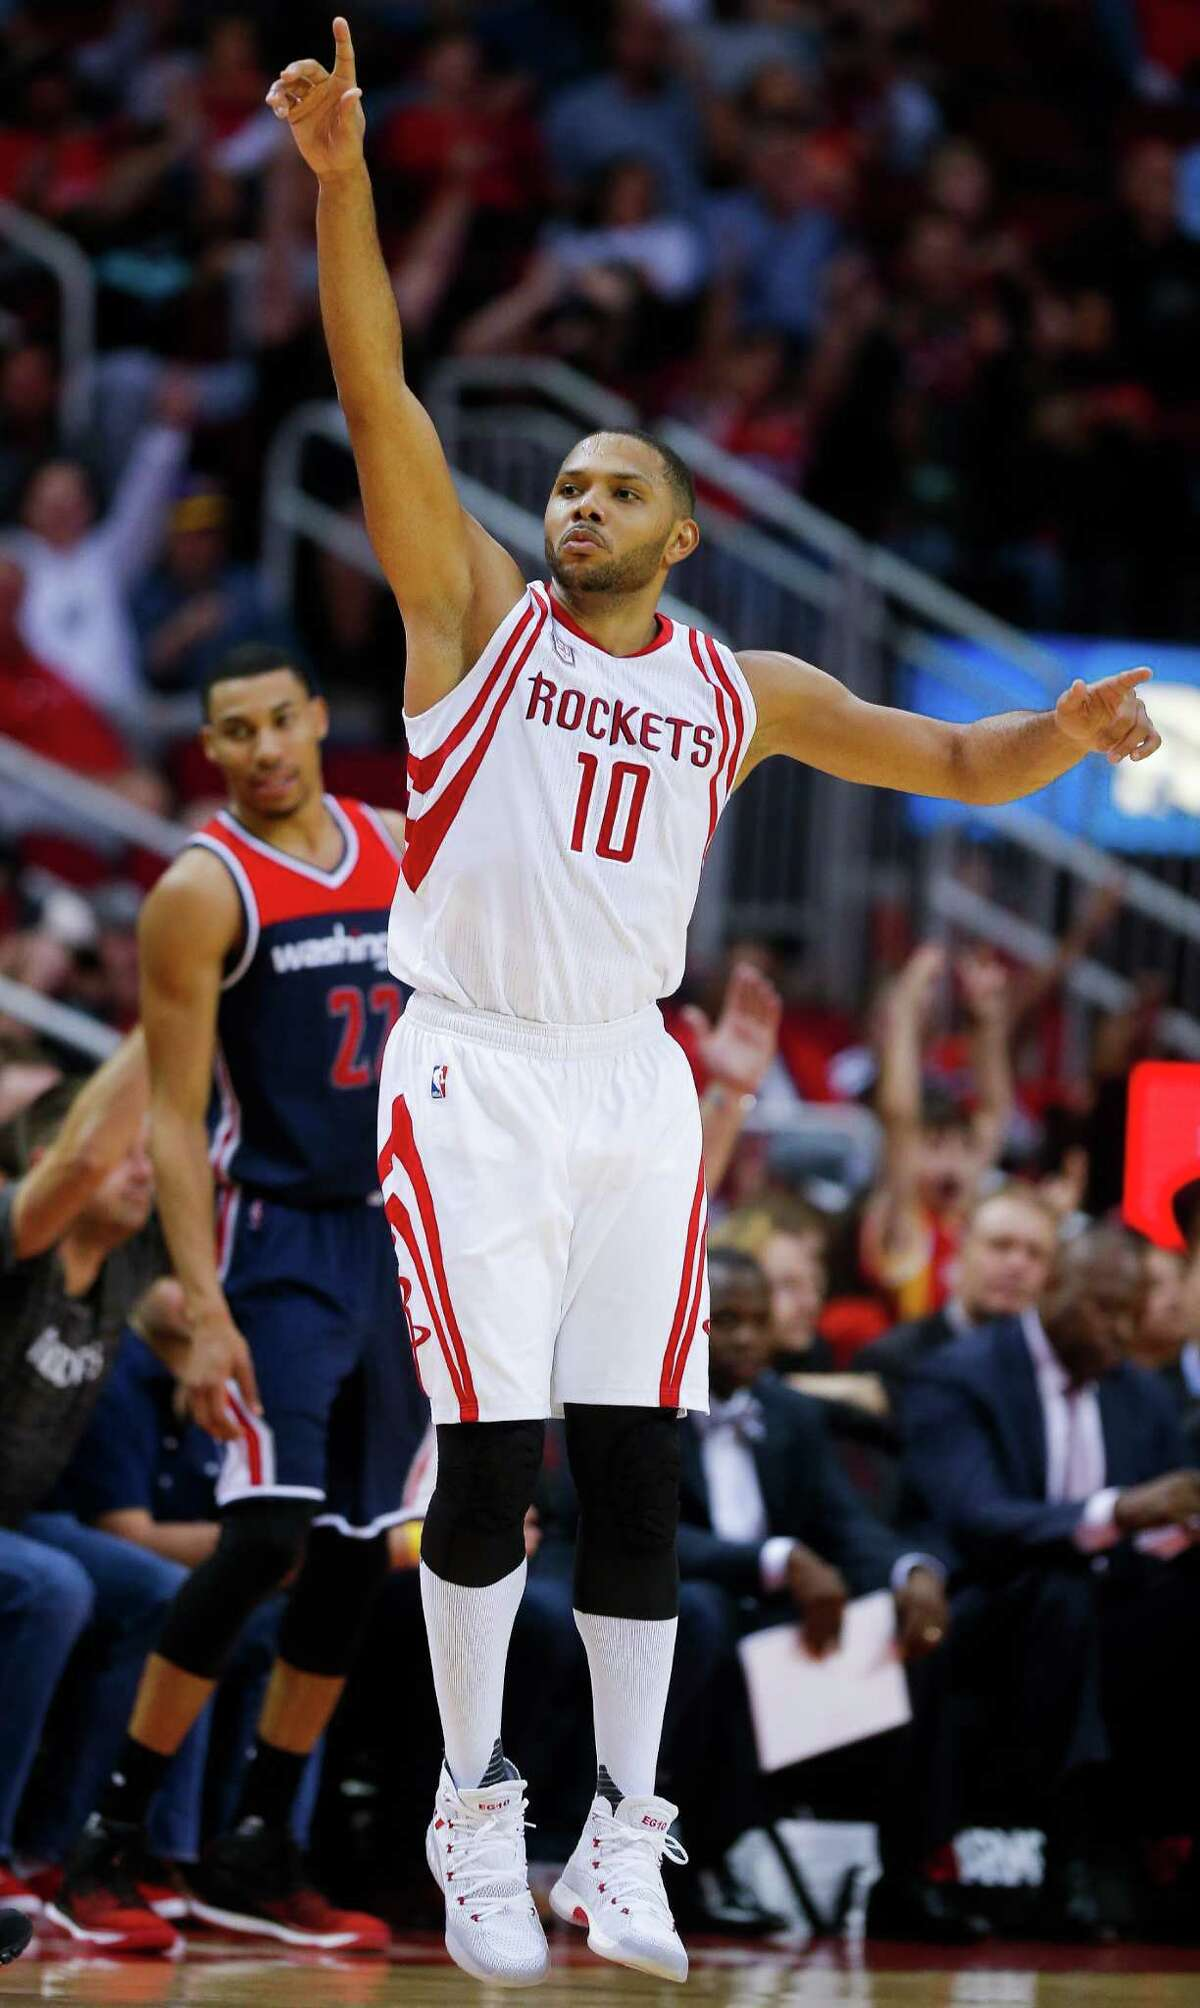 Houston Rockets guard Eric Gordon (10) reacts after hitting a three point shot as the Houston Rockets beat the Washington Wizards 101-91 at the Toyota Center Monday, Jan. 2, 2017 in Houston.